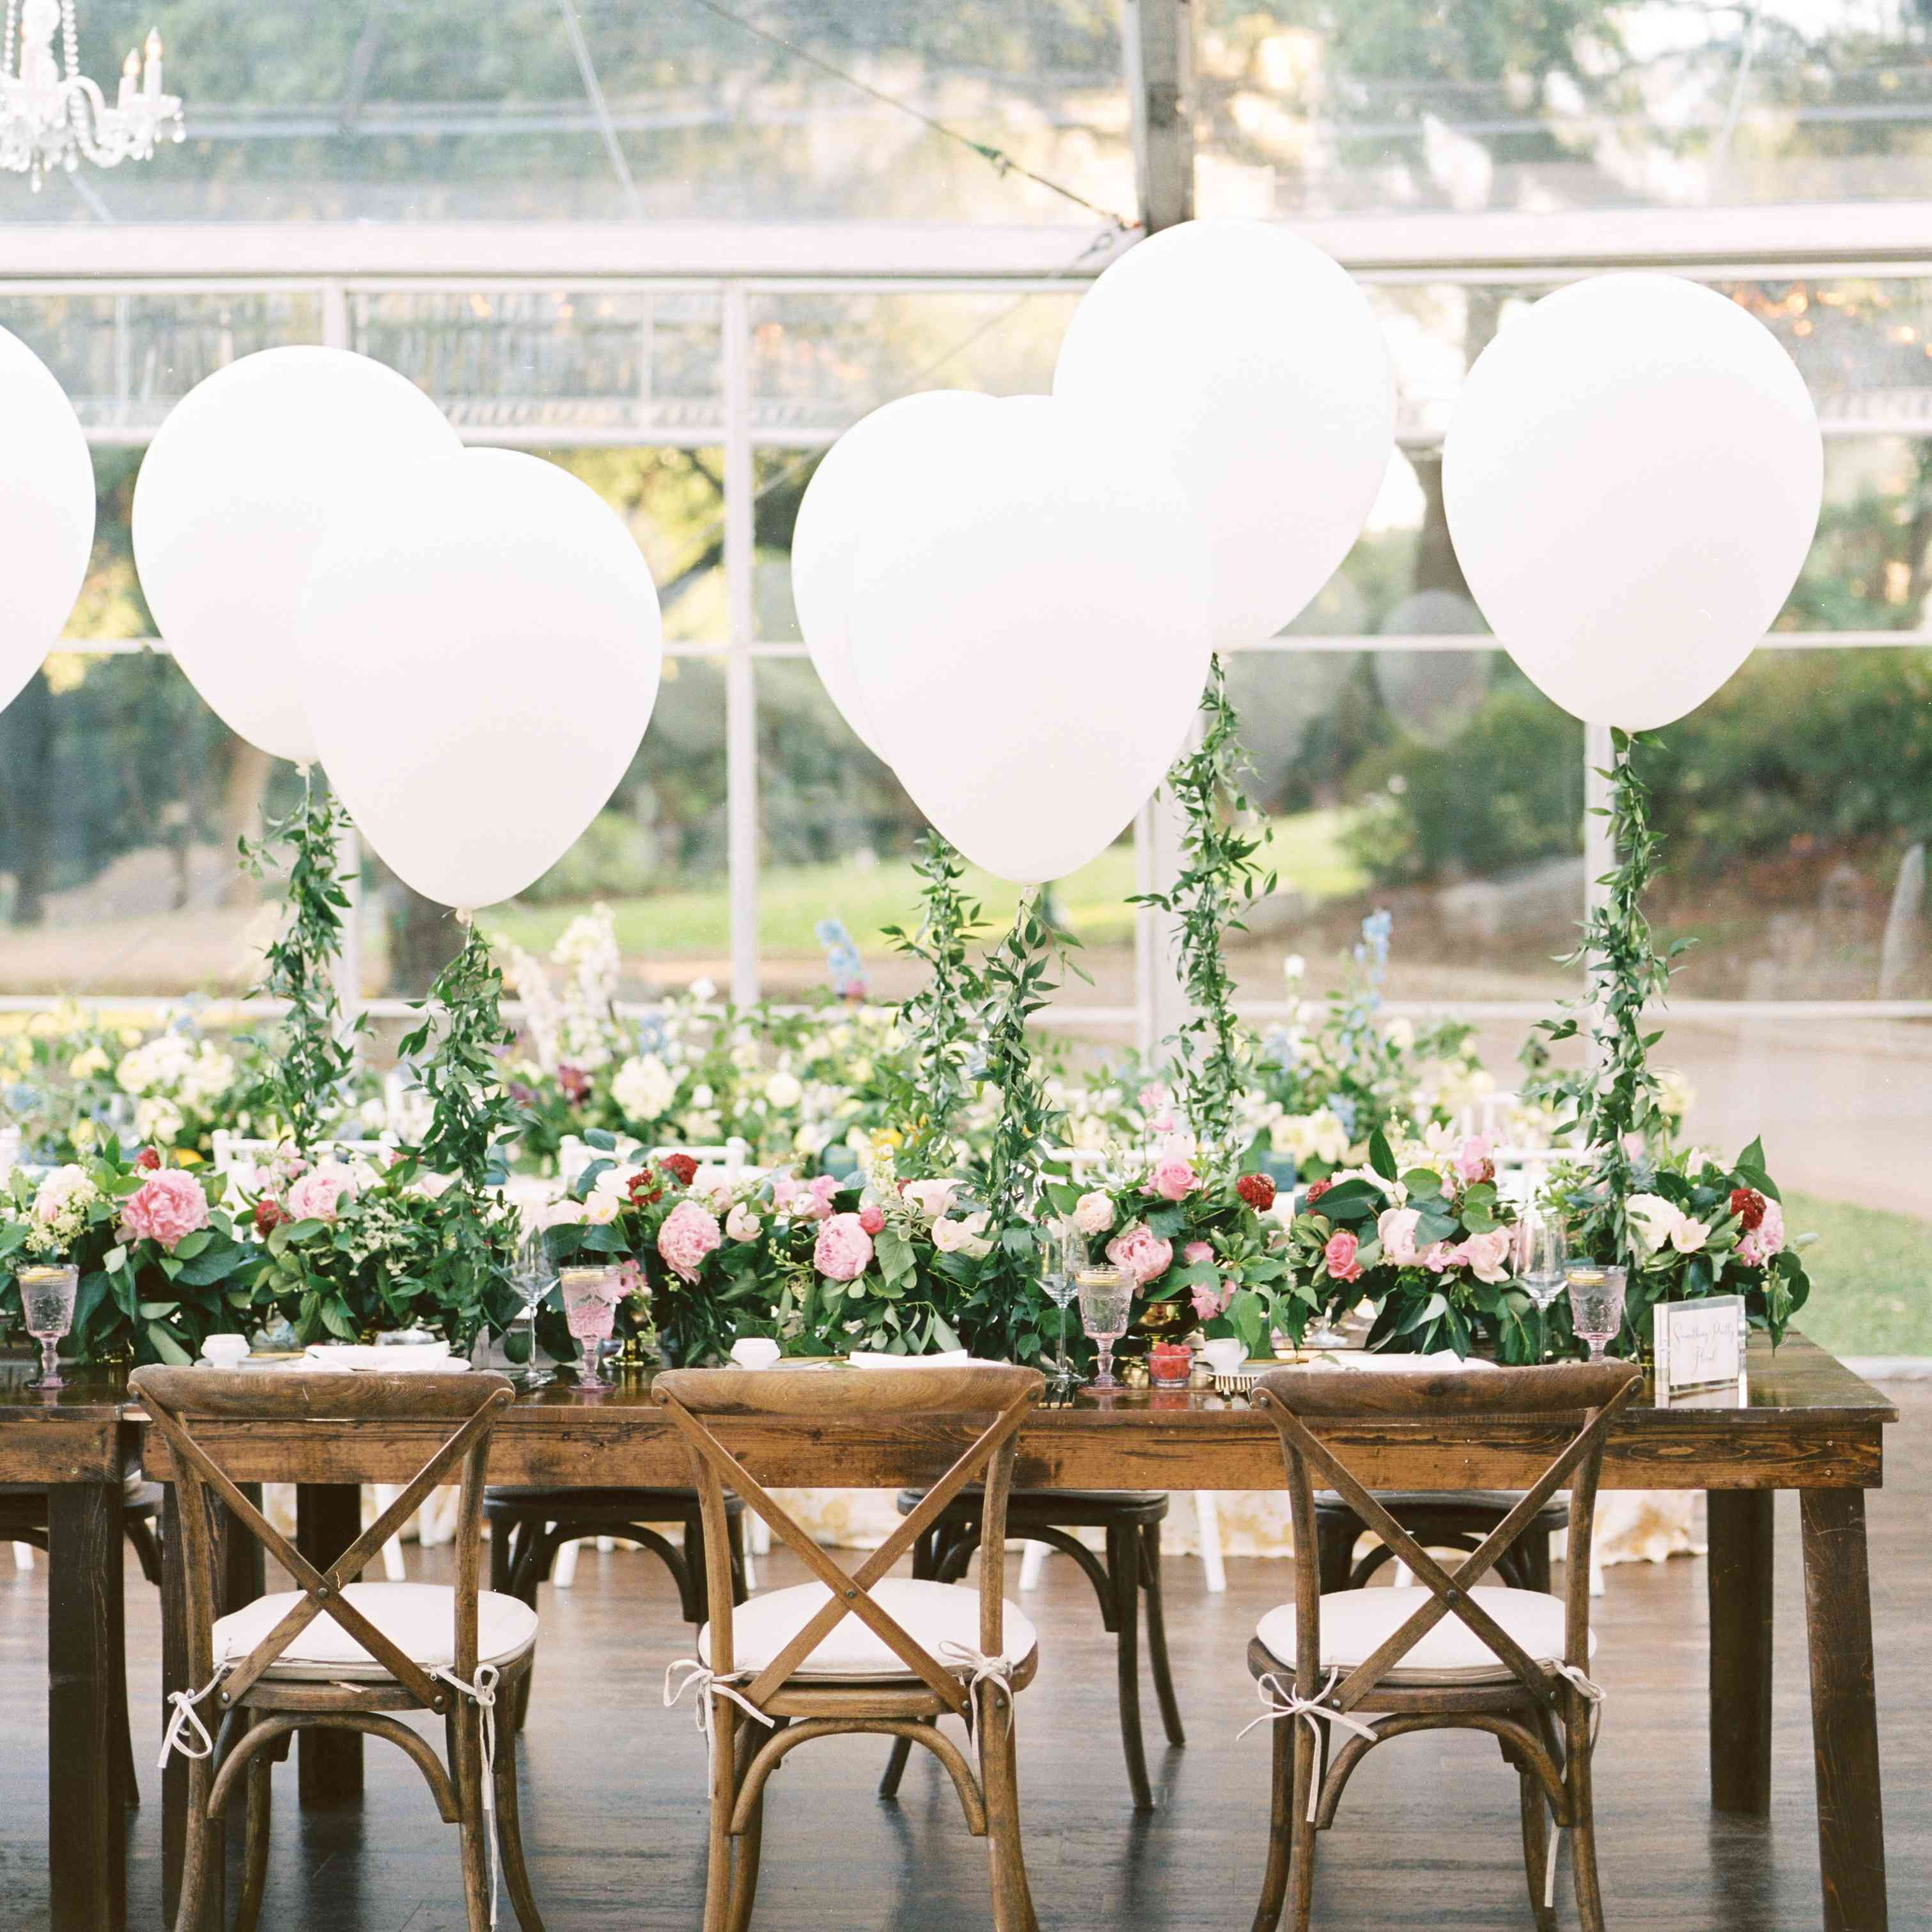 Balloon Decorations For Wedding Reception Ideas: 19 Ways To Use Balloons In Your Wedding Decor